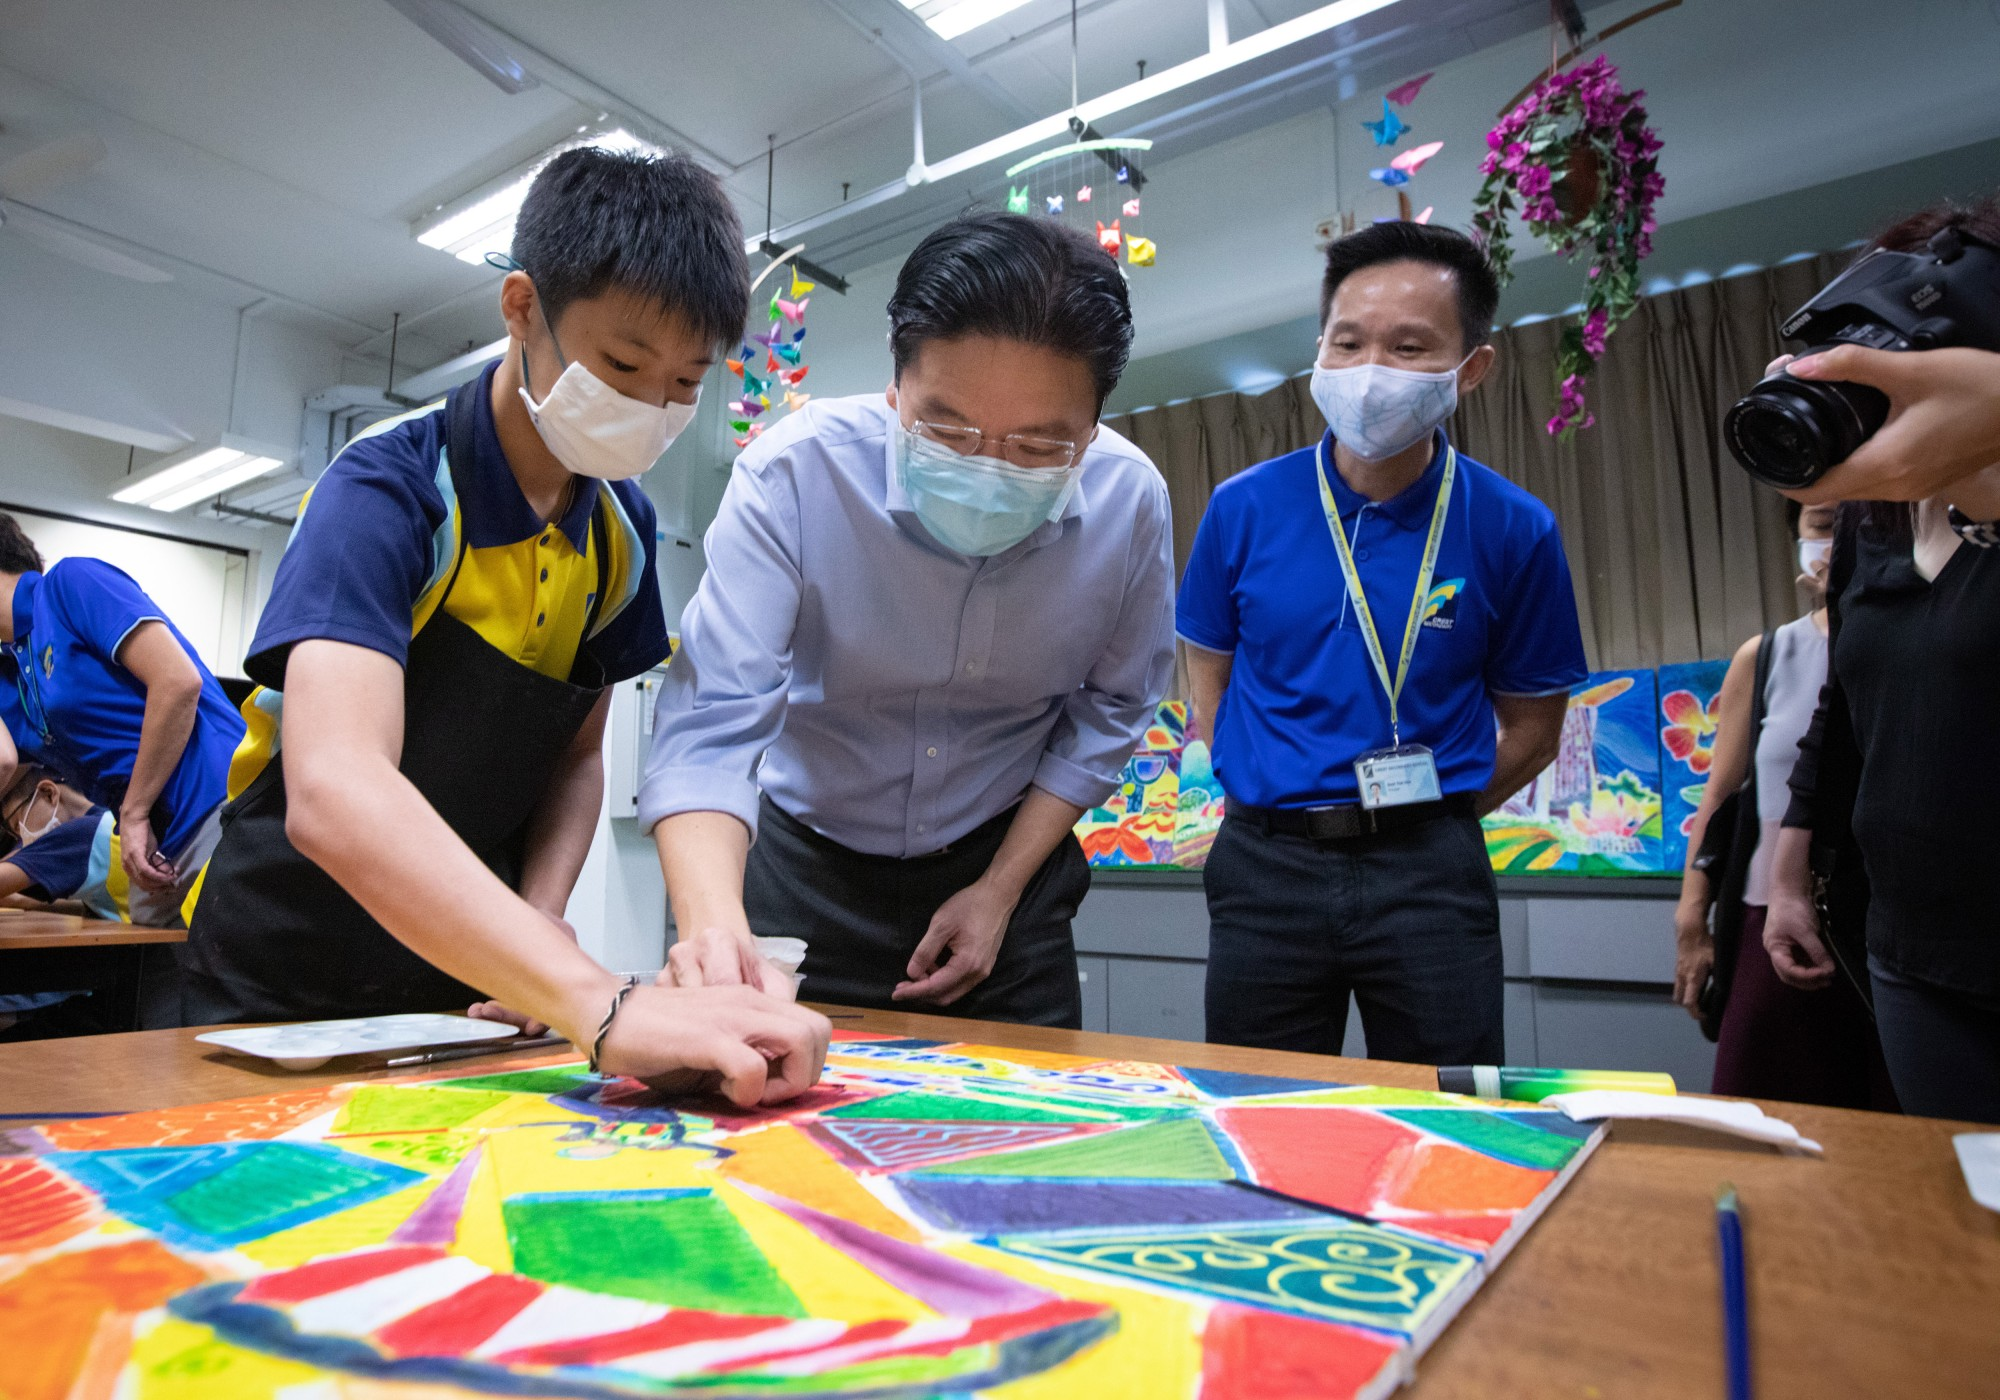 7 Aes -Min Lawrence Wong participated in creating Batik On Wood Artwork 29th Sept 20.jpg